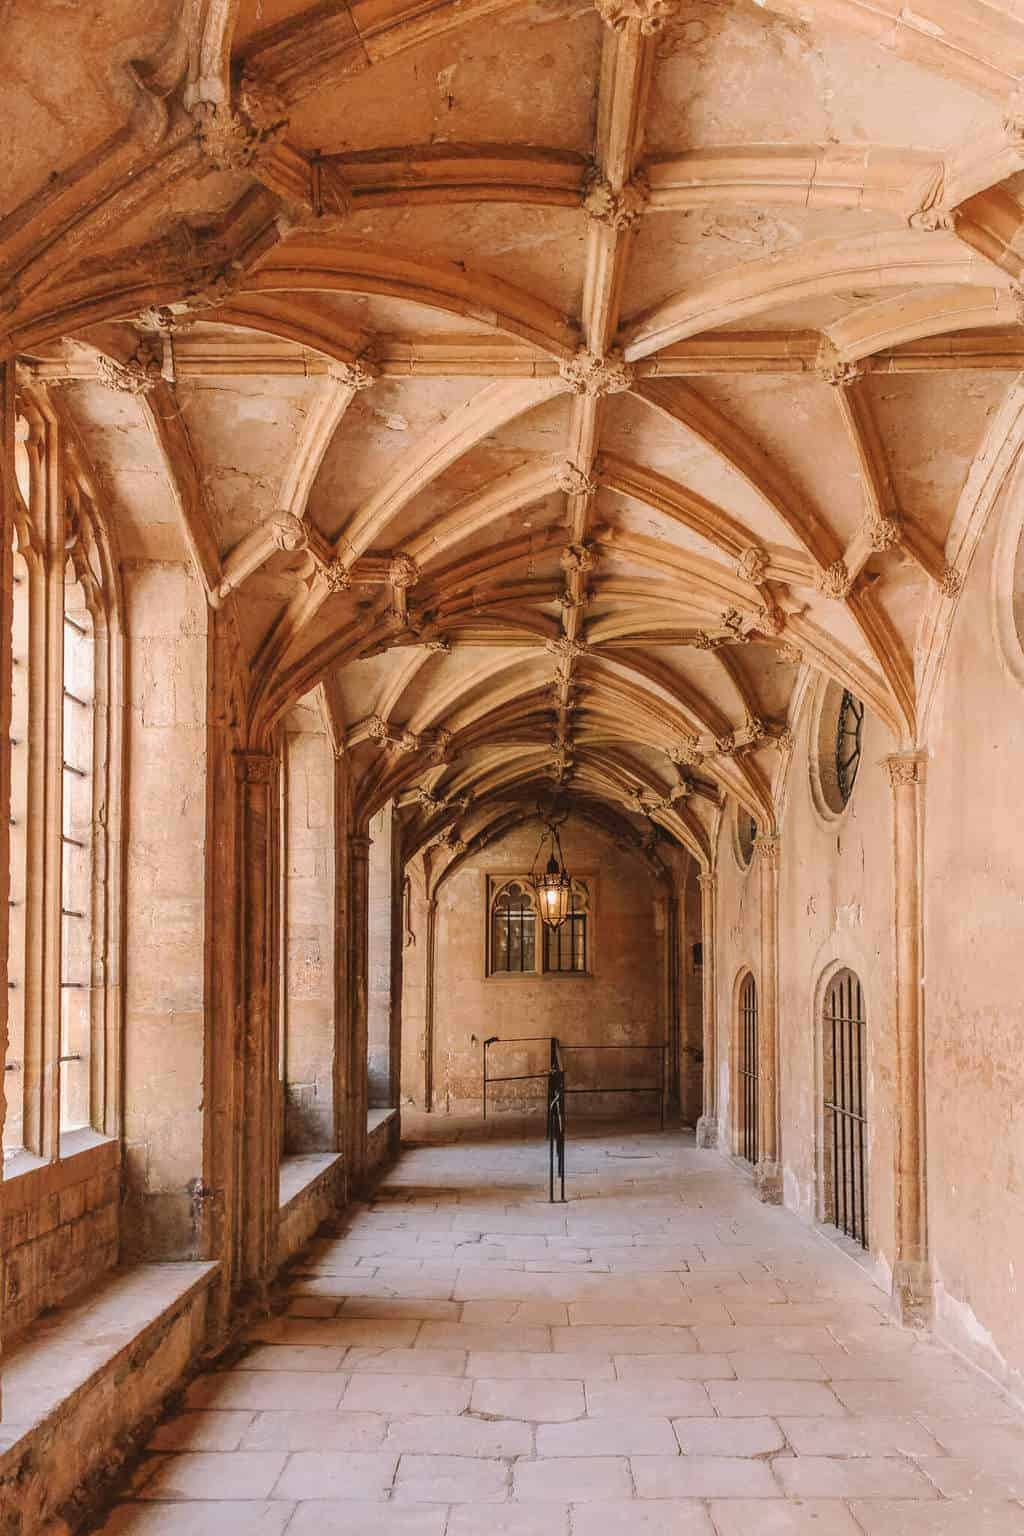 15 Things You Didn't Know About Christ Church, Oxford University - Cloisters